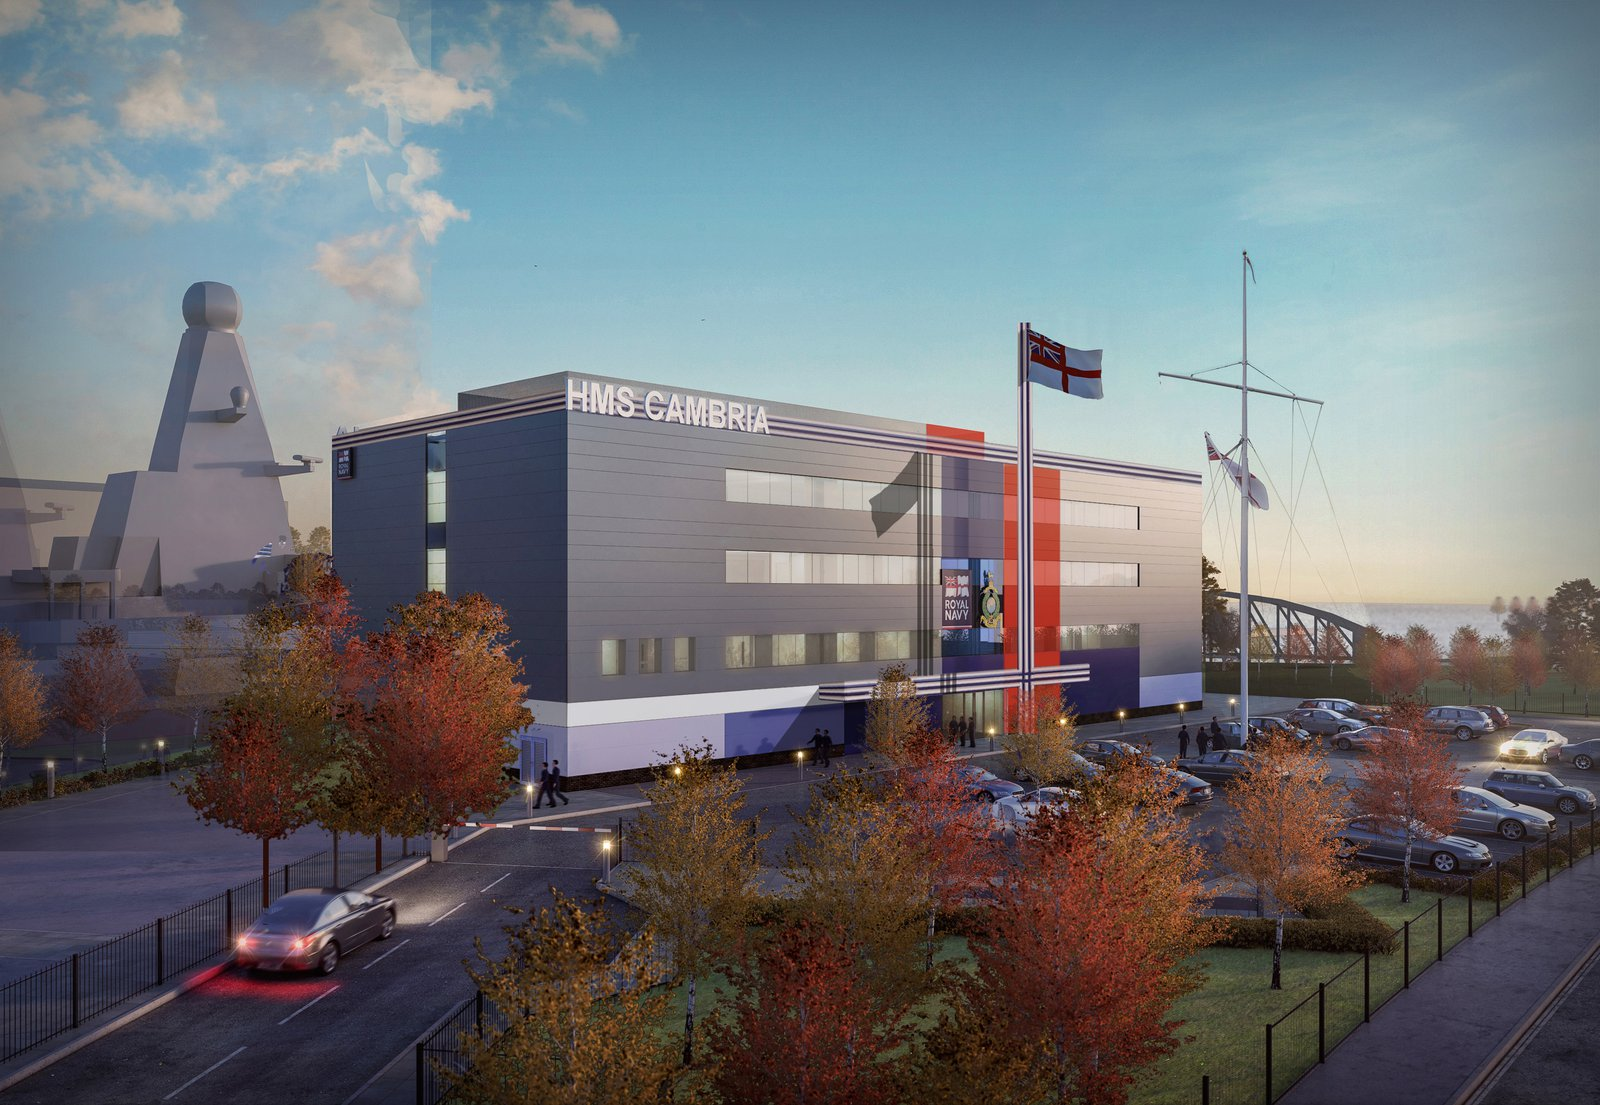 Image of the proposed HMS Cambria building